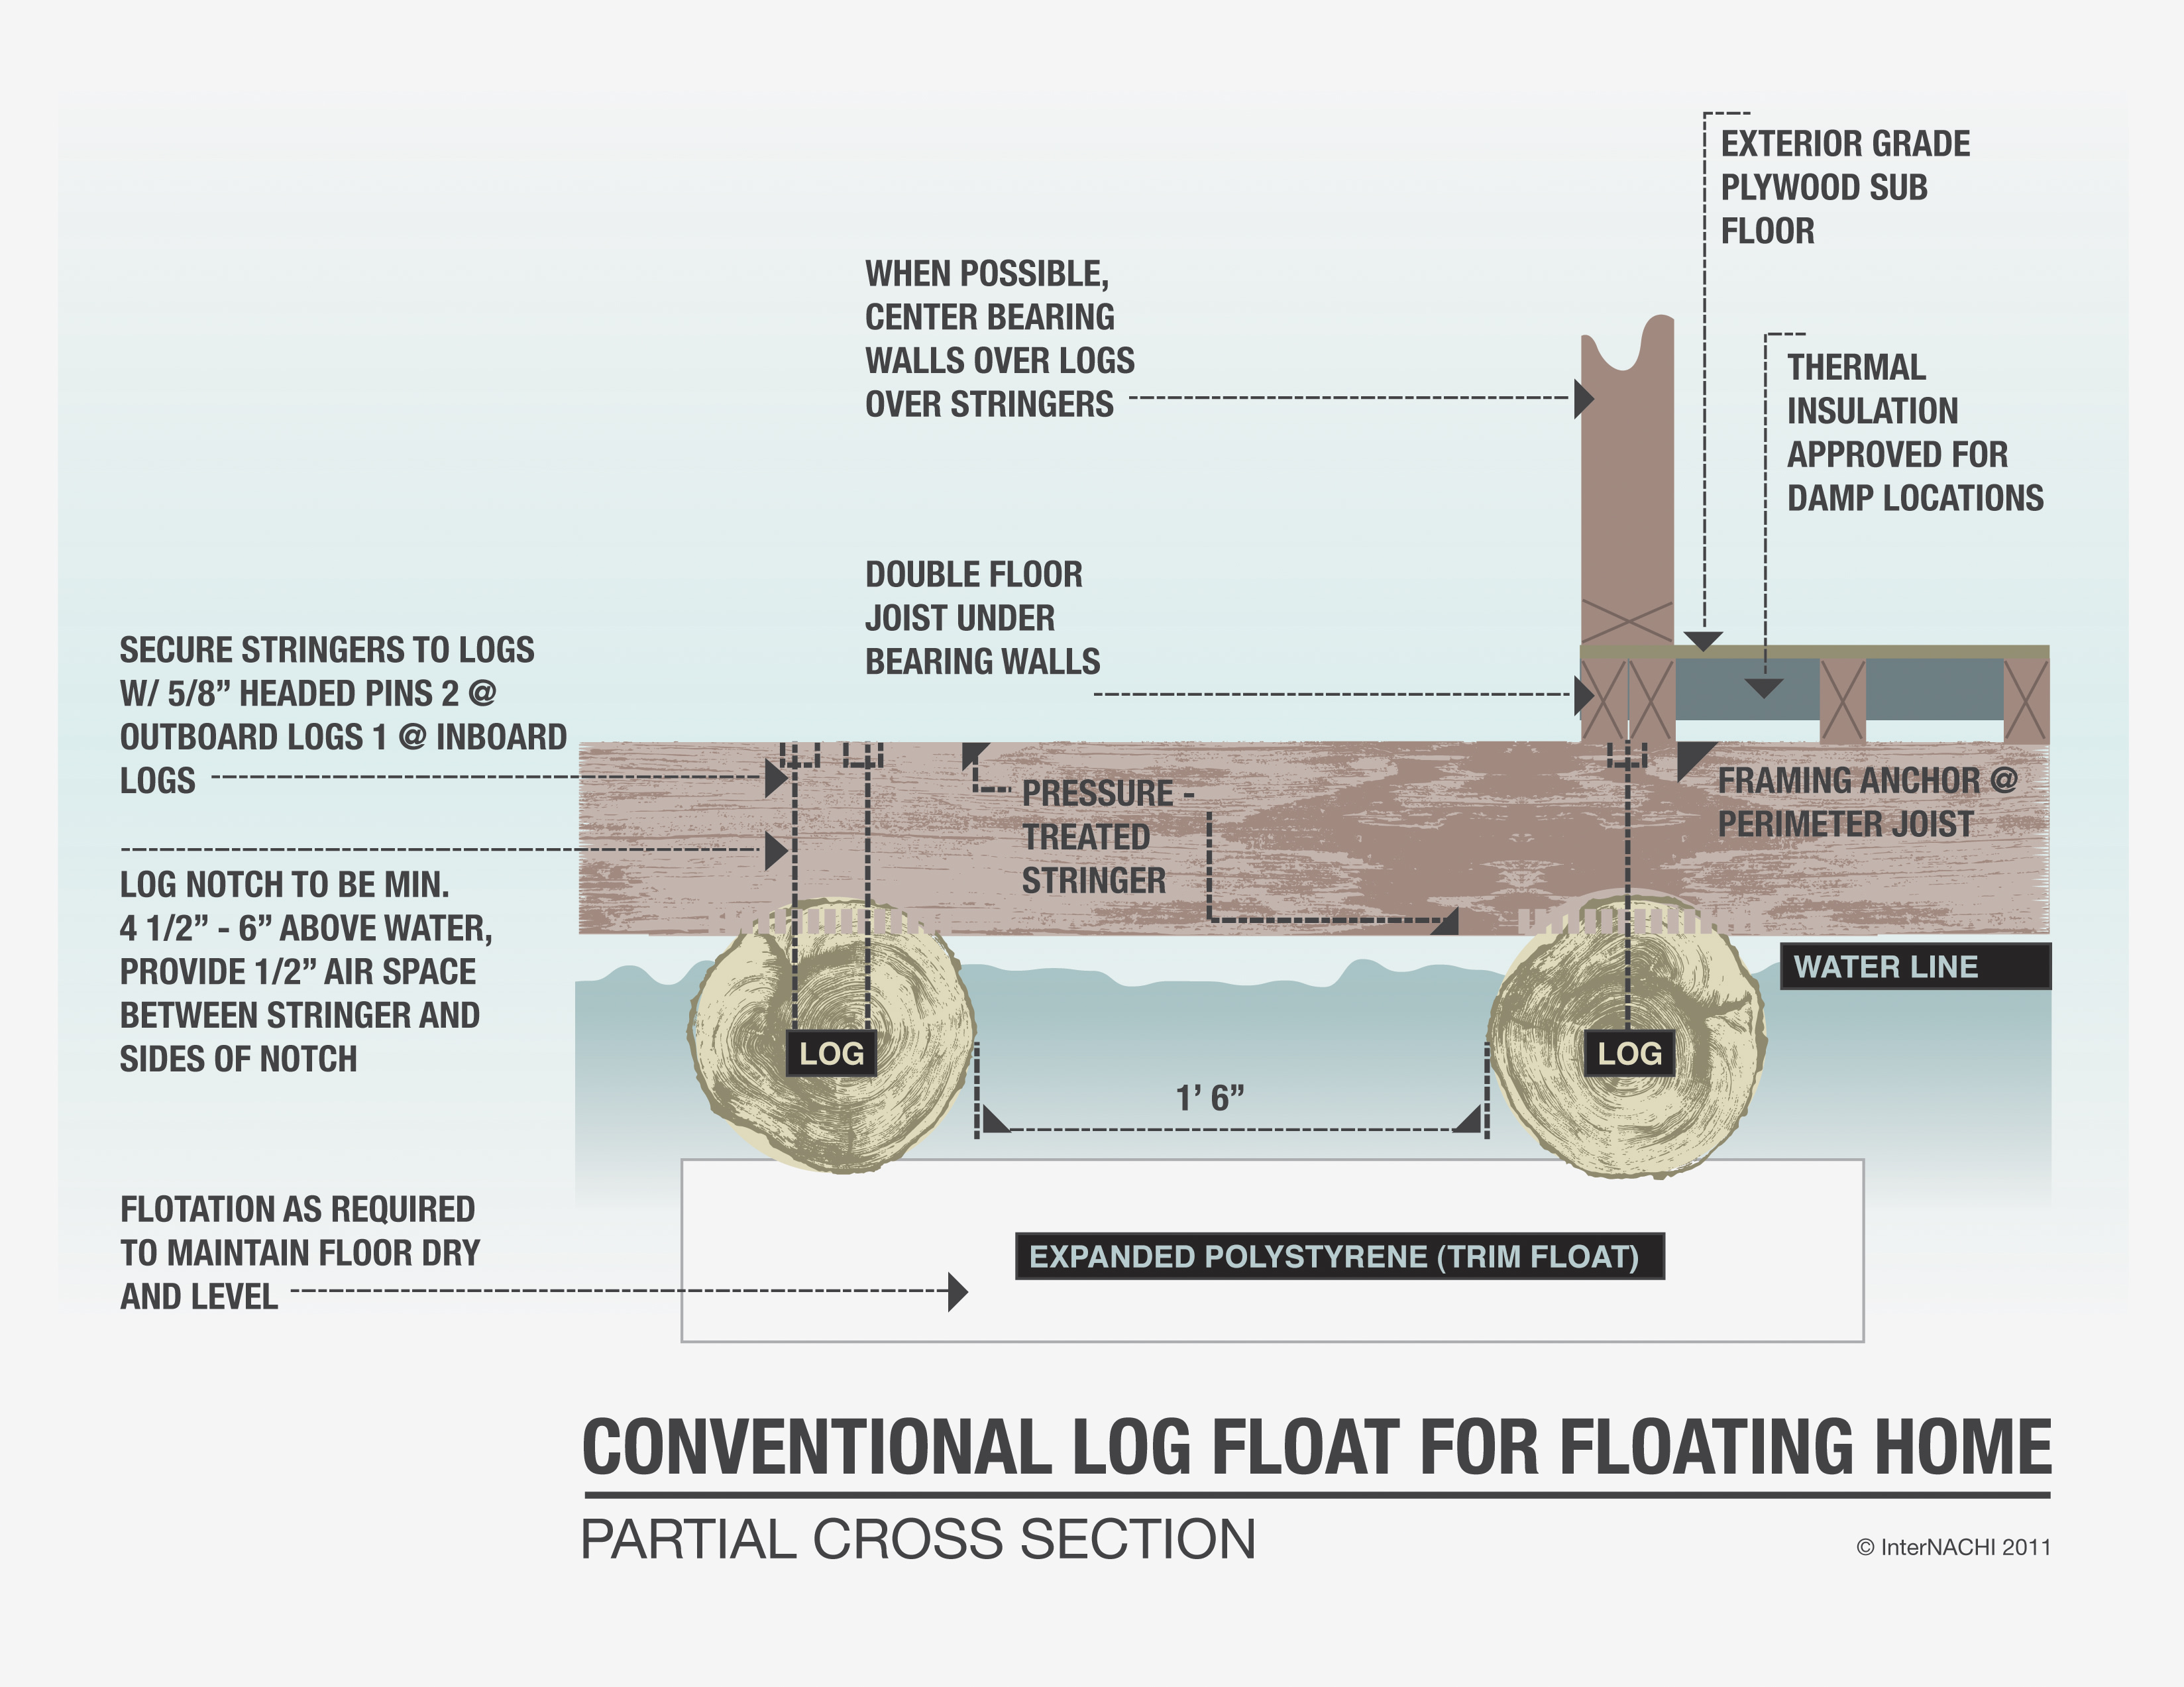 Conventional Log Float For Floating